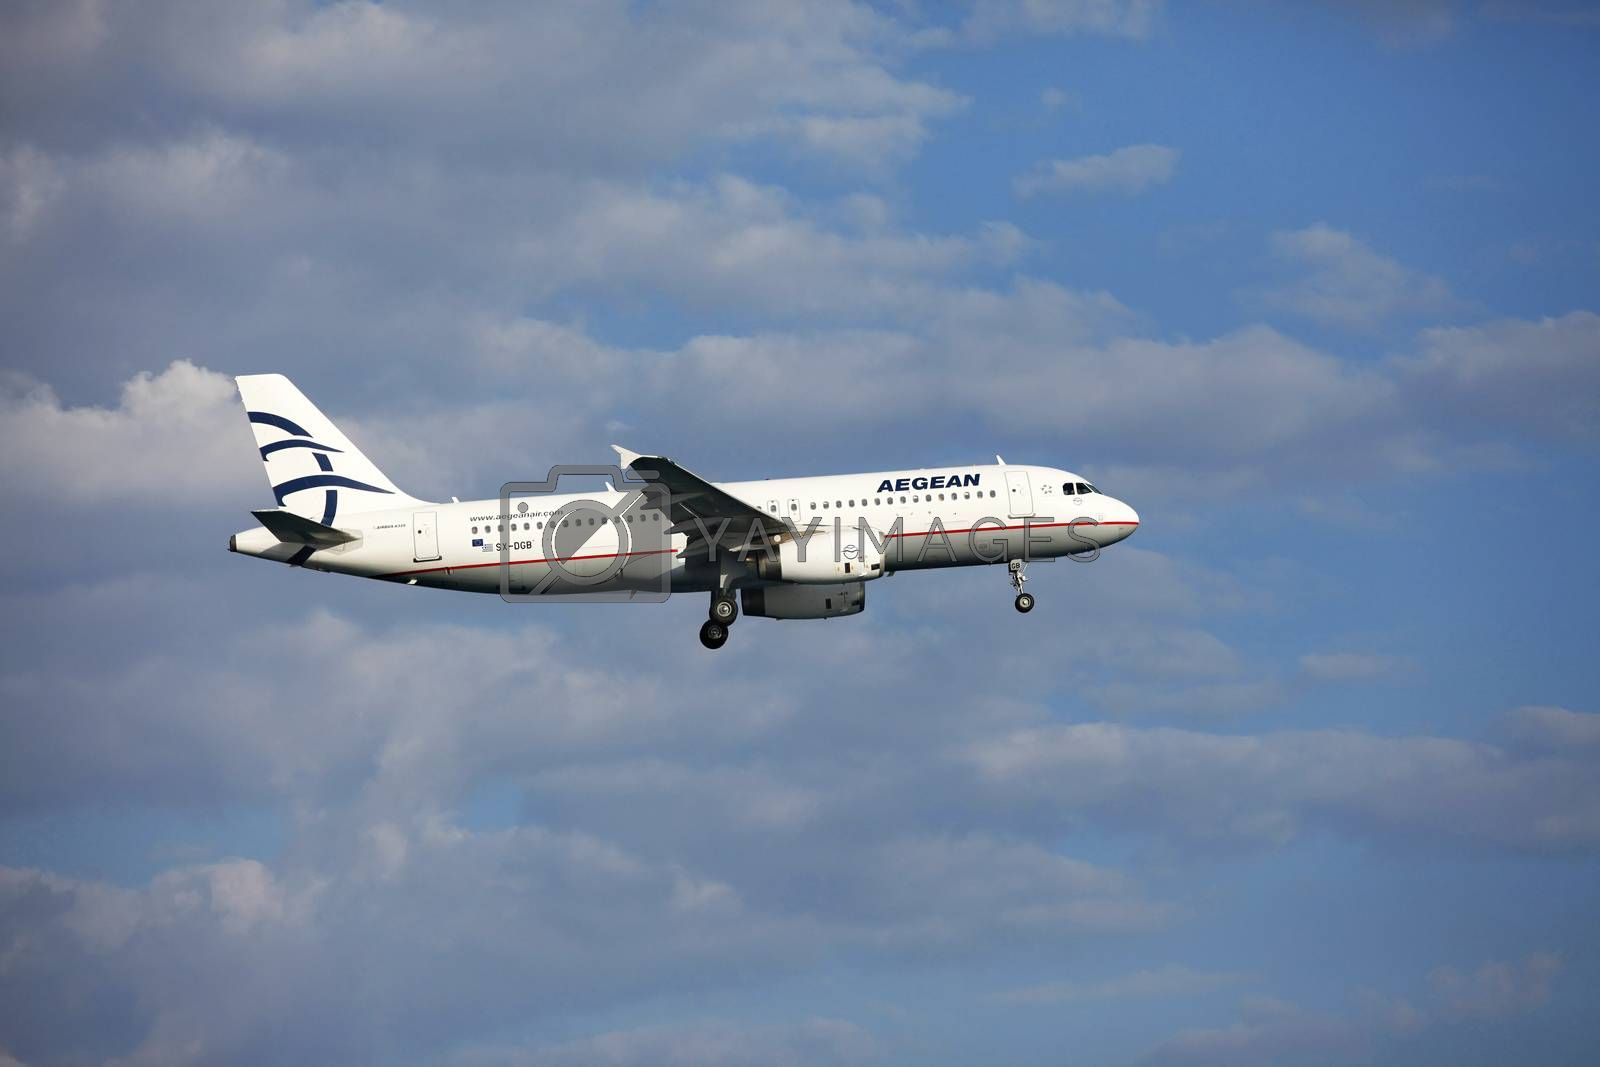 Larnaca, Cyprus - May 29, 2016: Aegean Airlines Airbus A320 lands at Larnaca International Airport. It is the largest Greek airline